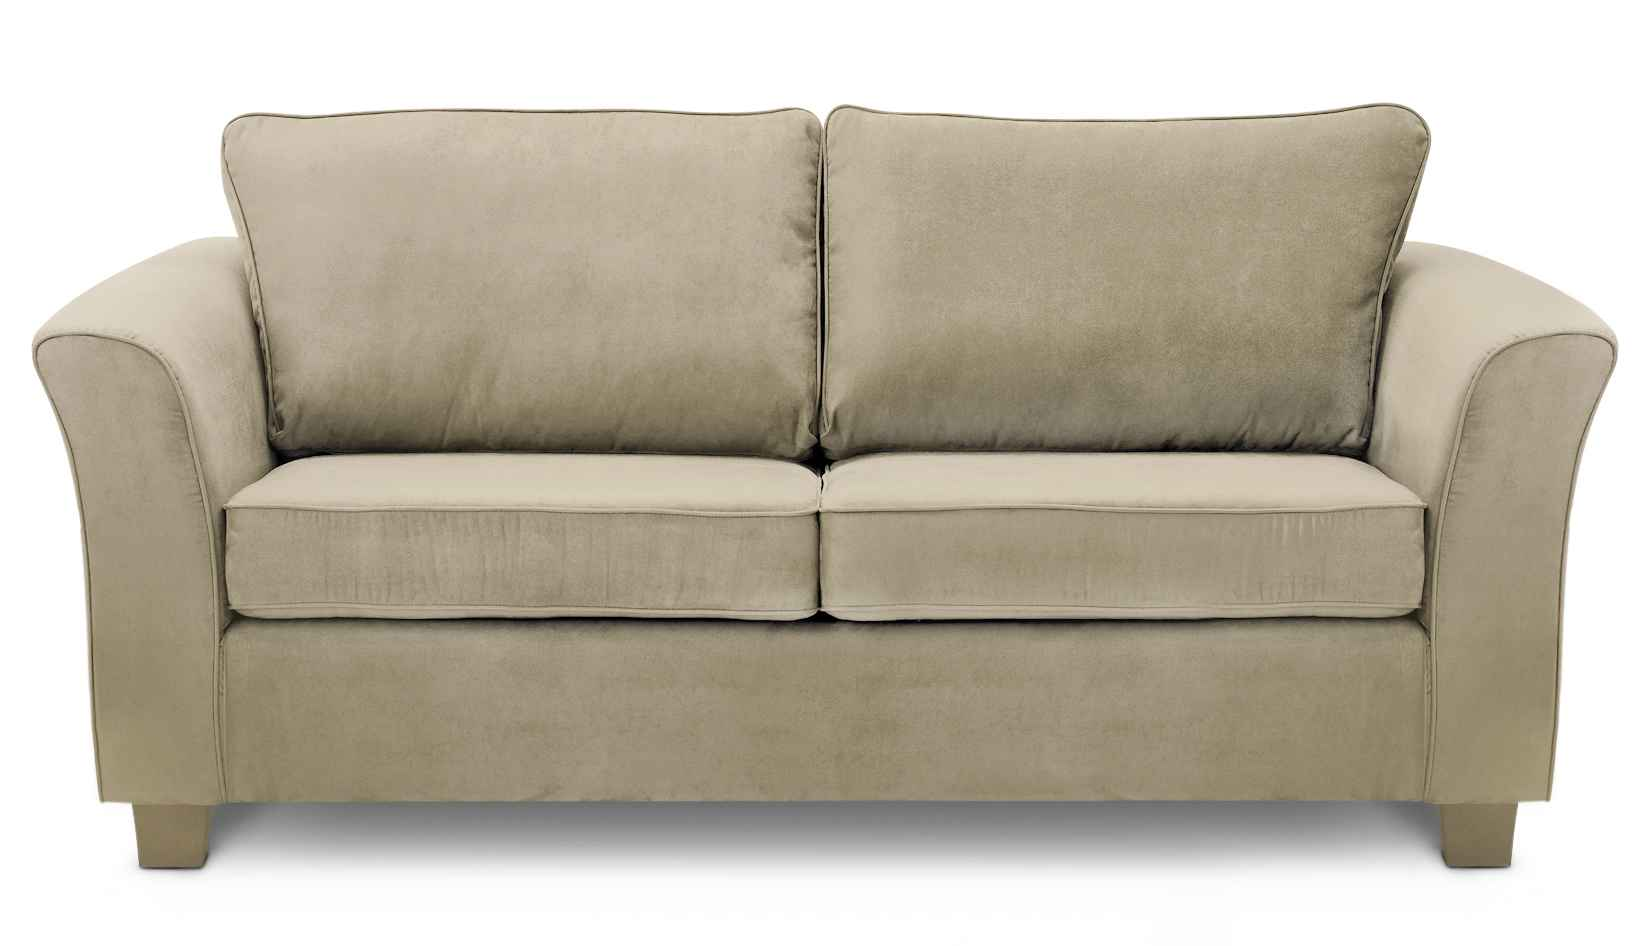 Living room furniture sets for sale cheap 2017 2018 for Tan couches for sale